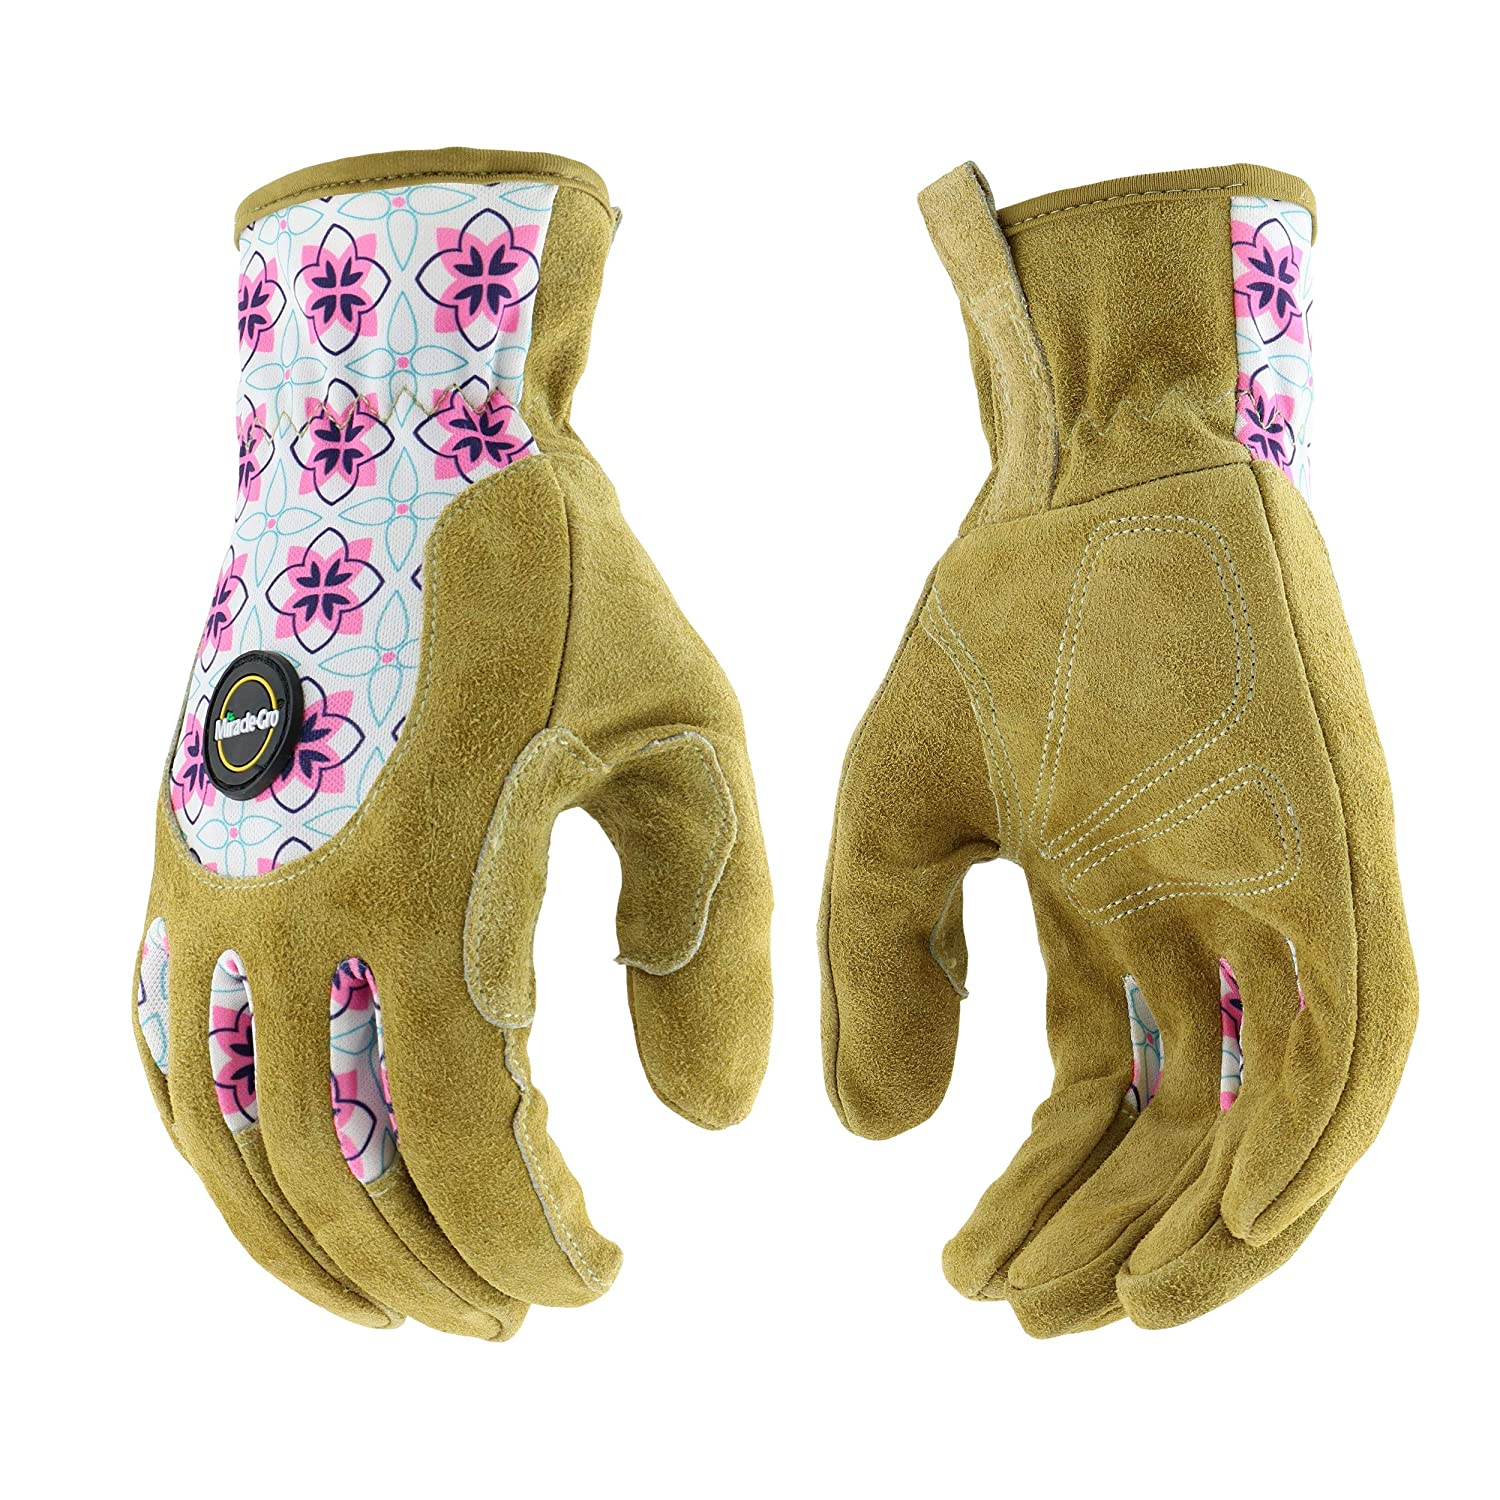 West Chester Miracle-Gro MG23081/WSM Split Leather Garden Gloves – Floral, Small-Medium, High Dexterity Spandex Back Gloves for Women